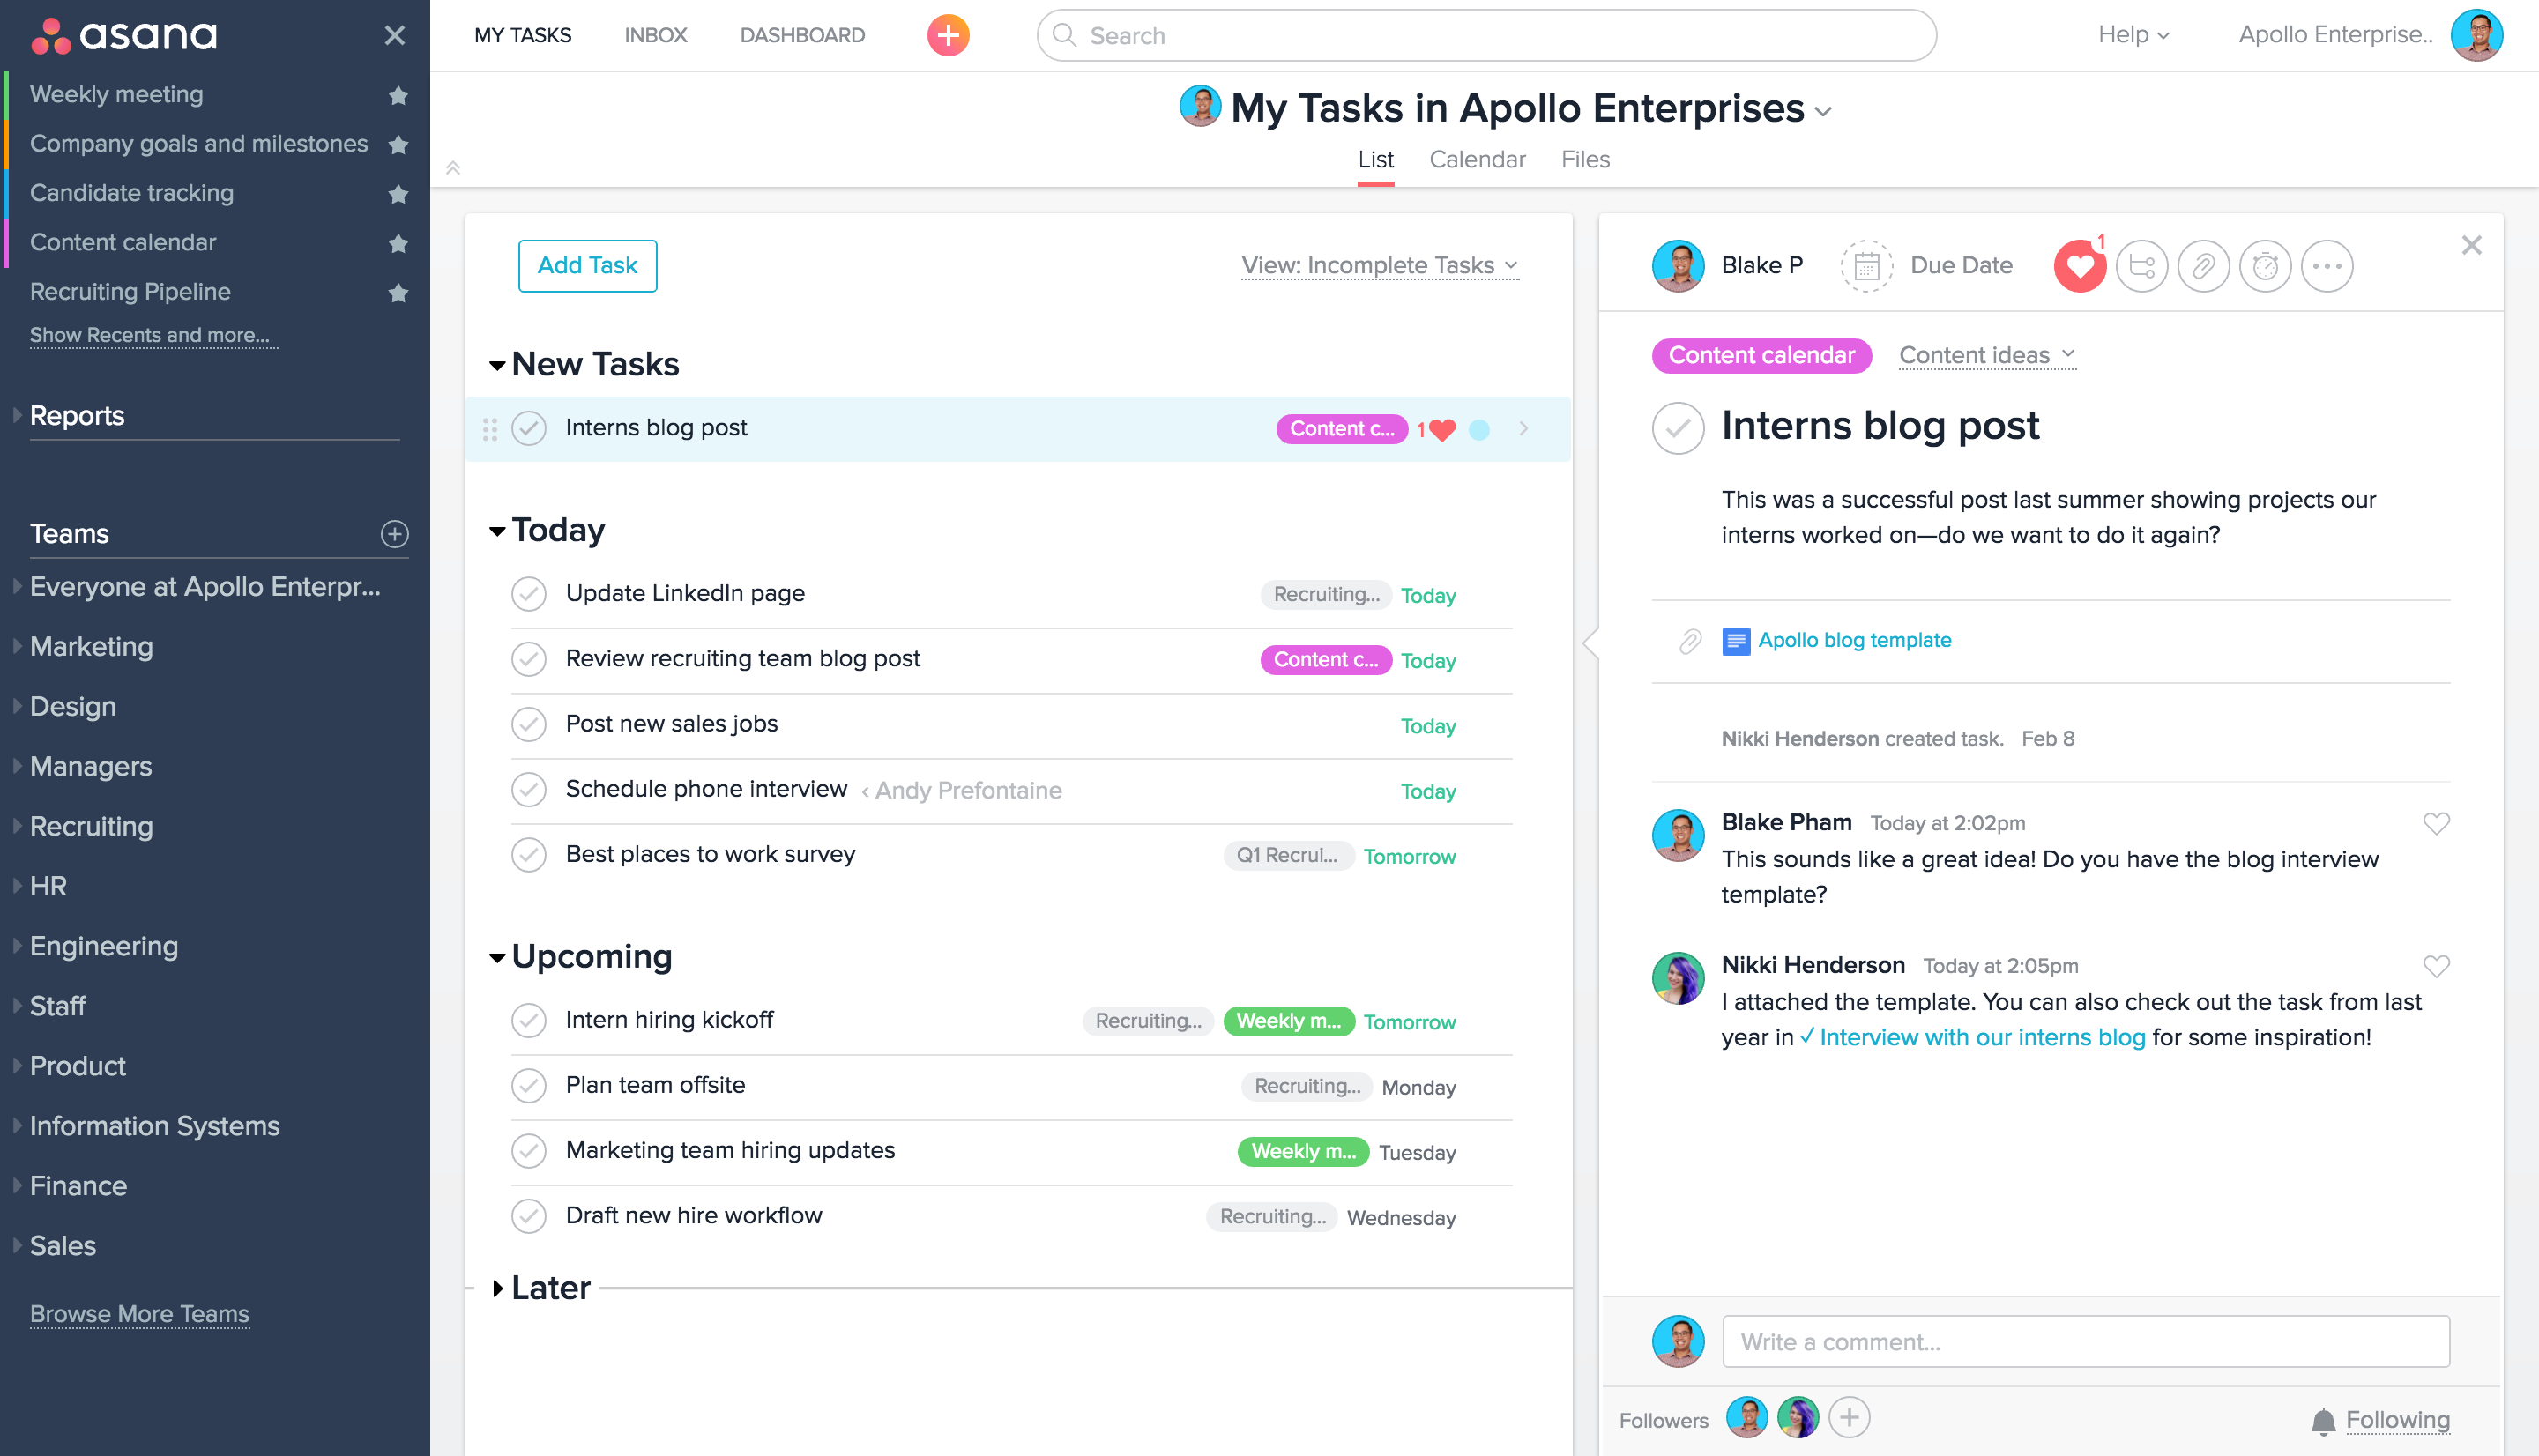 asana for business intelligence software reporting